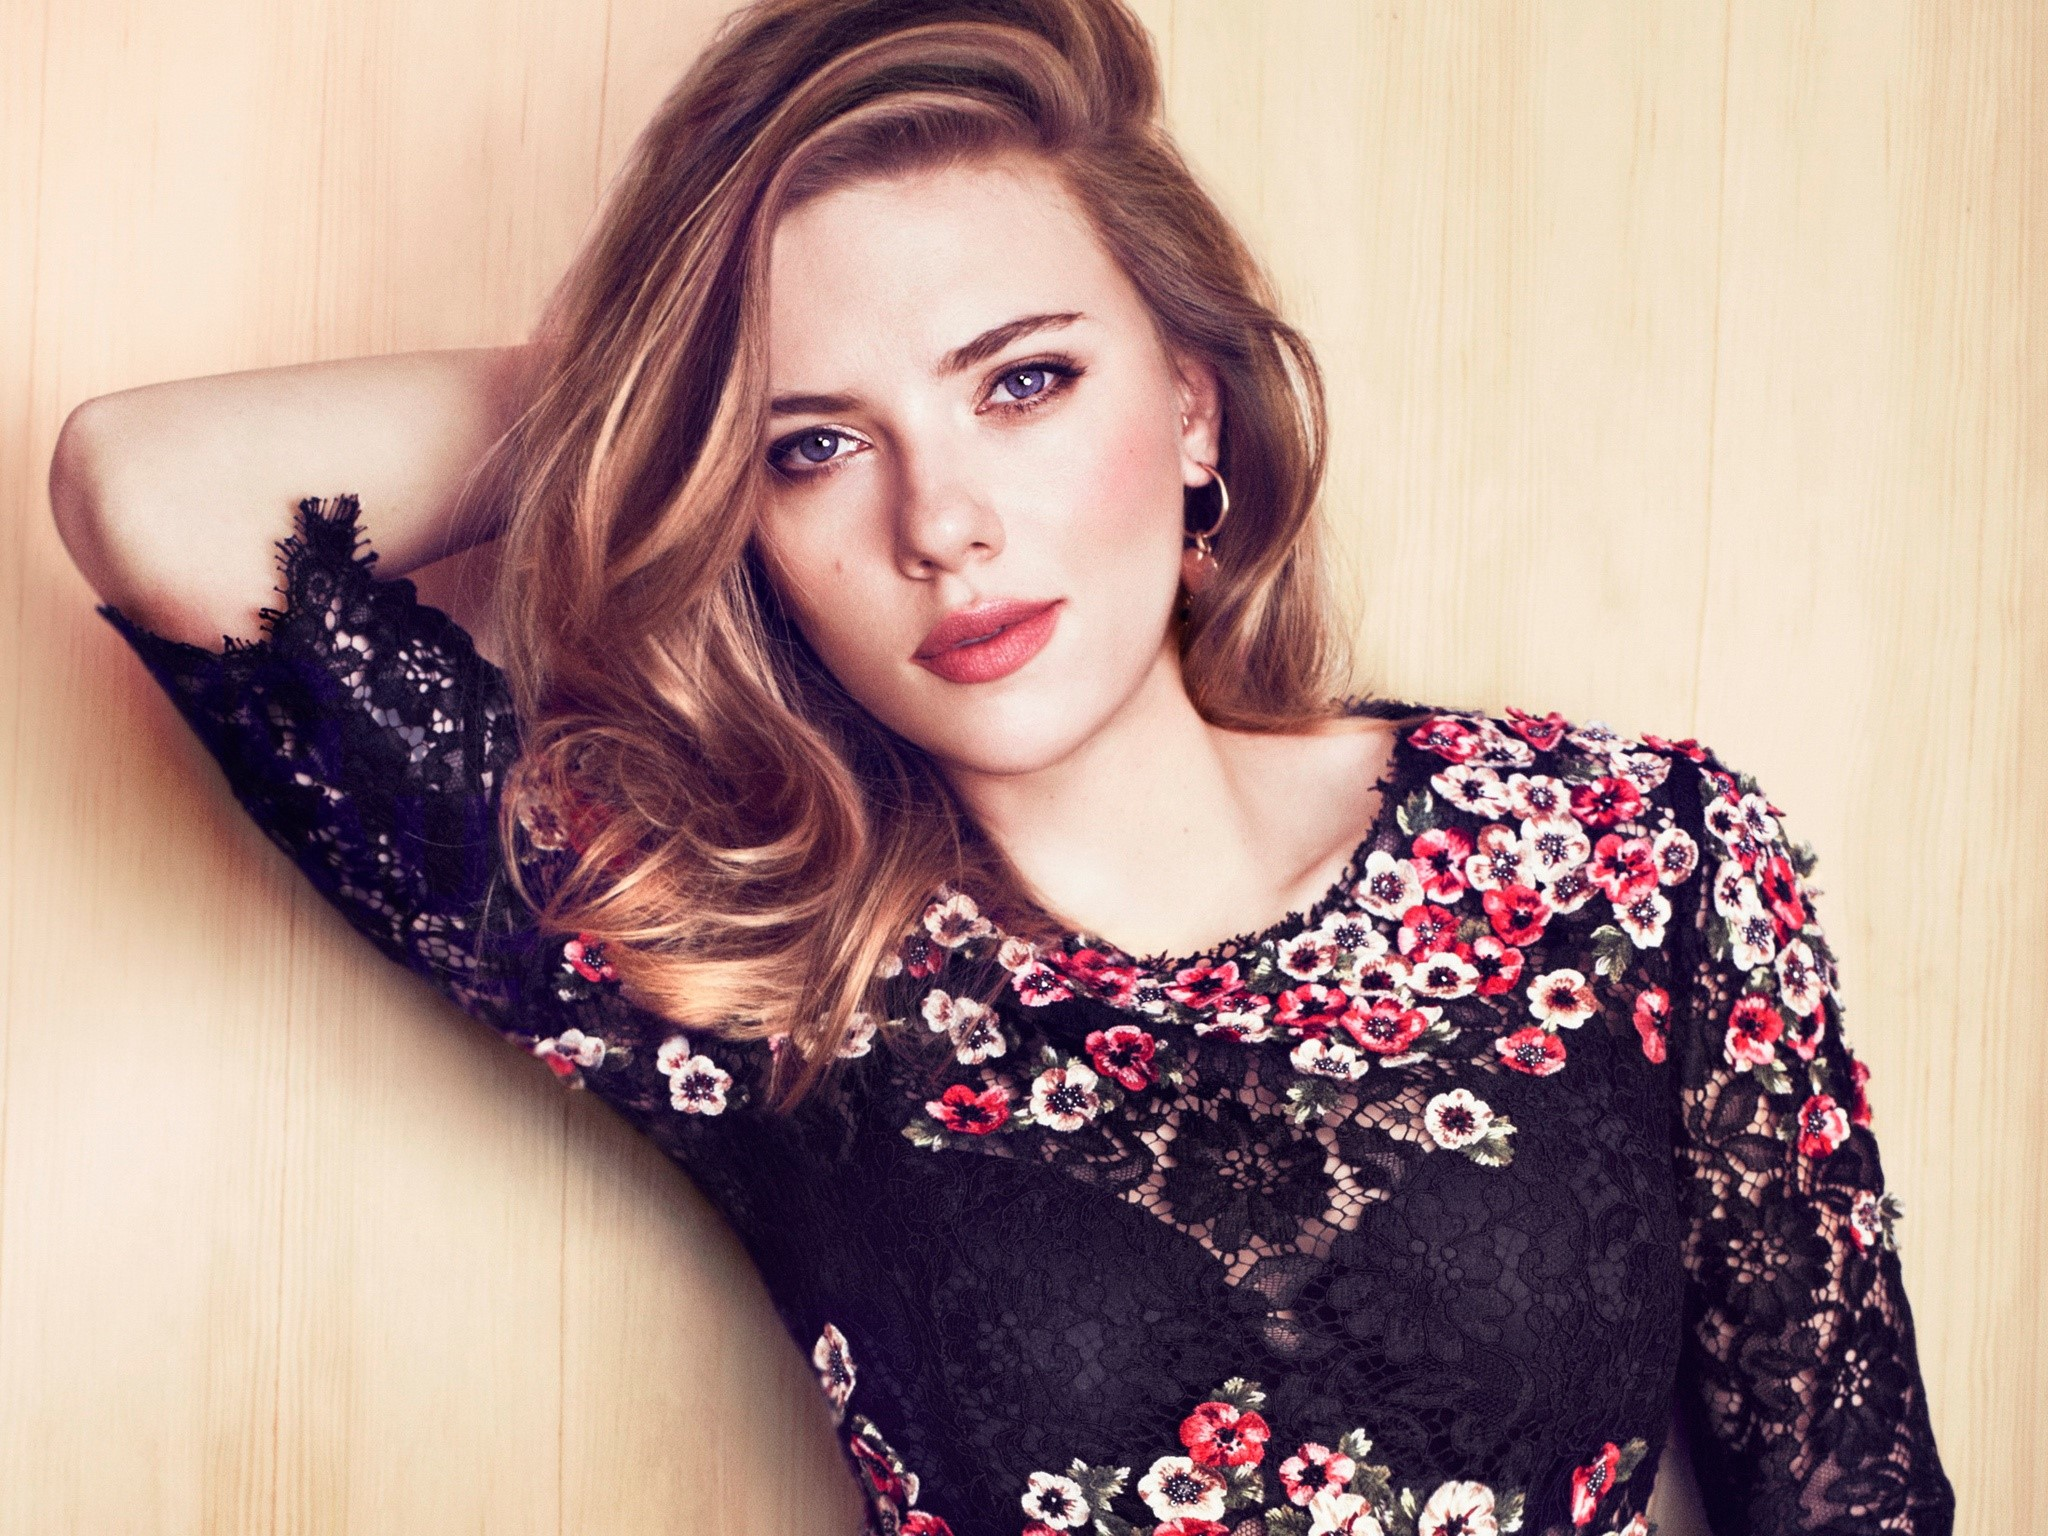 Wallpaper Scarlett Johansson wearing clothes with Roses